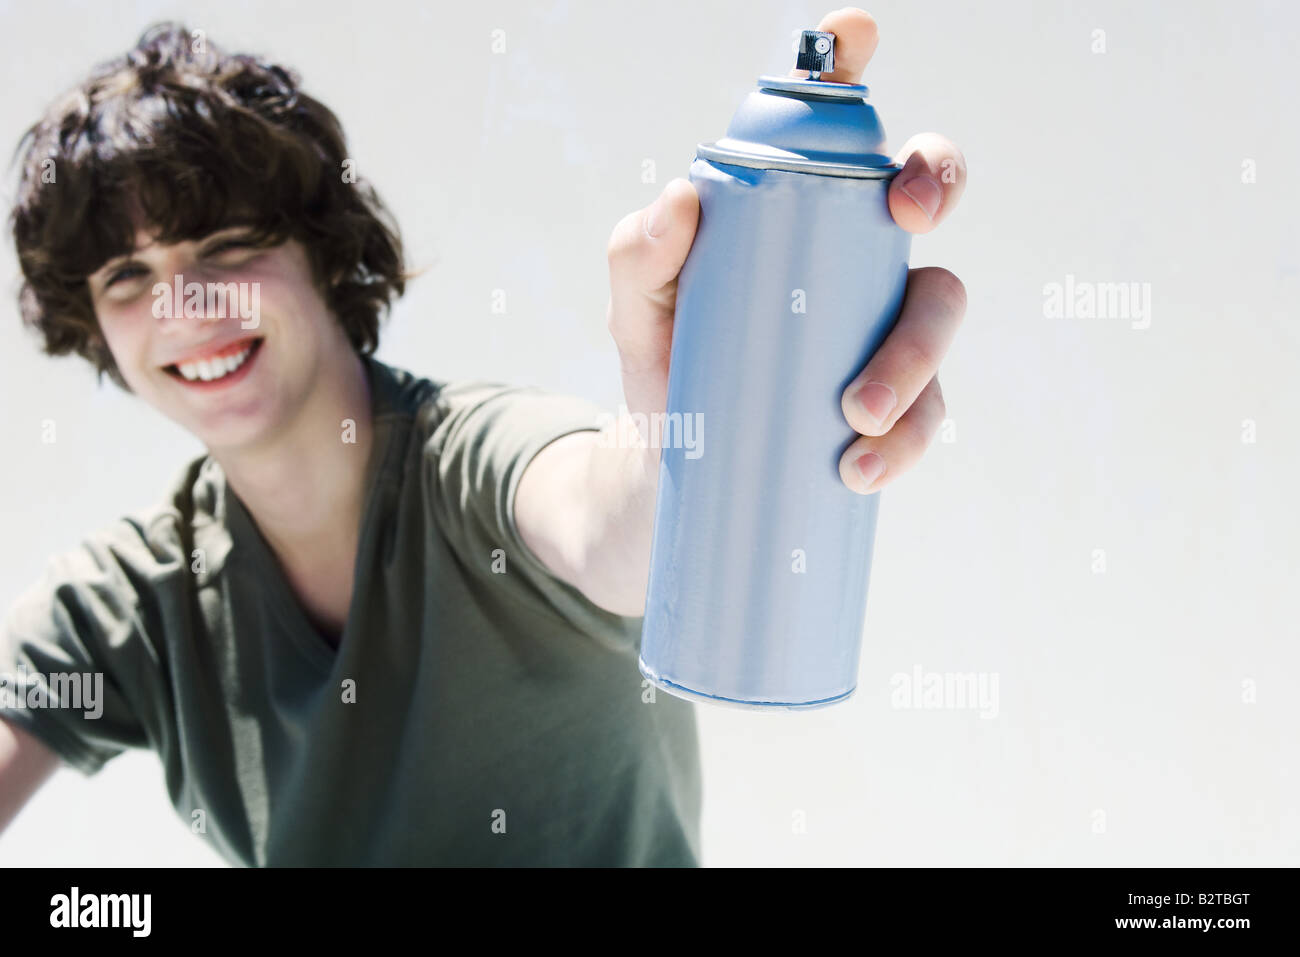 Teenage boy holding can of spray paint, smiling at camera - Stock Image